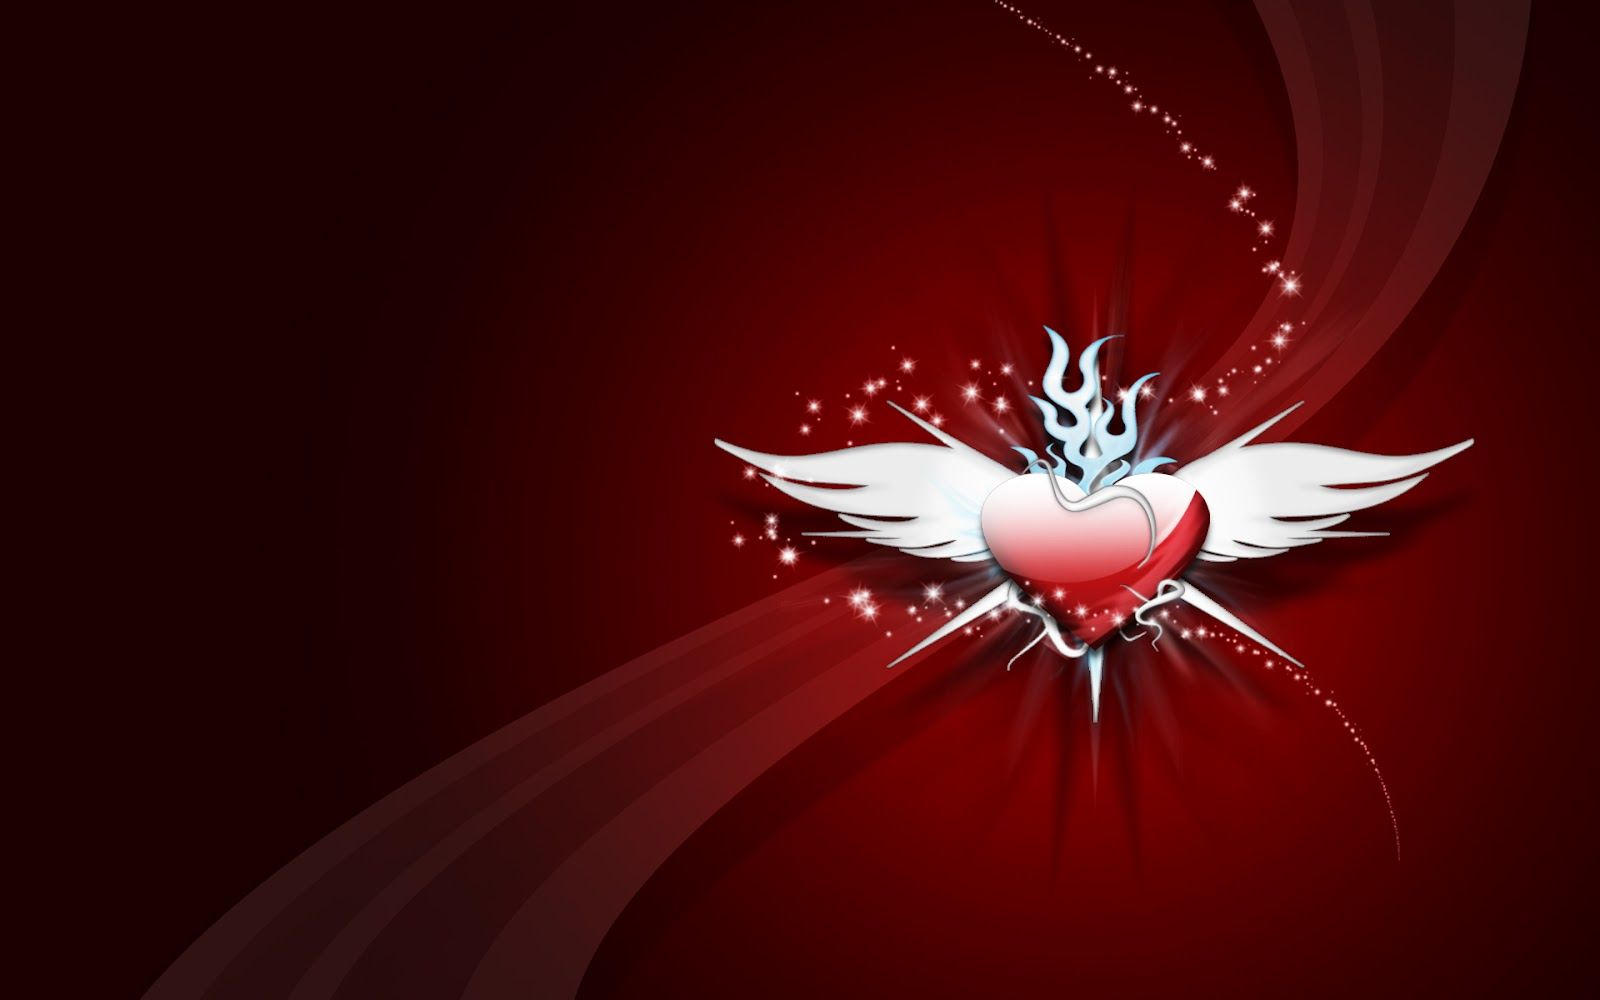 1600x1000 Free download Tribal Heart Love Love Wallpaper Love ...